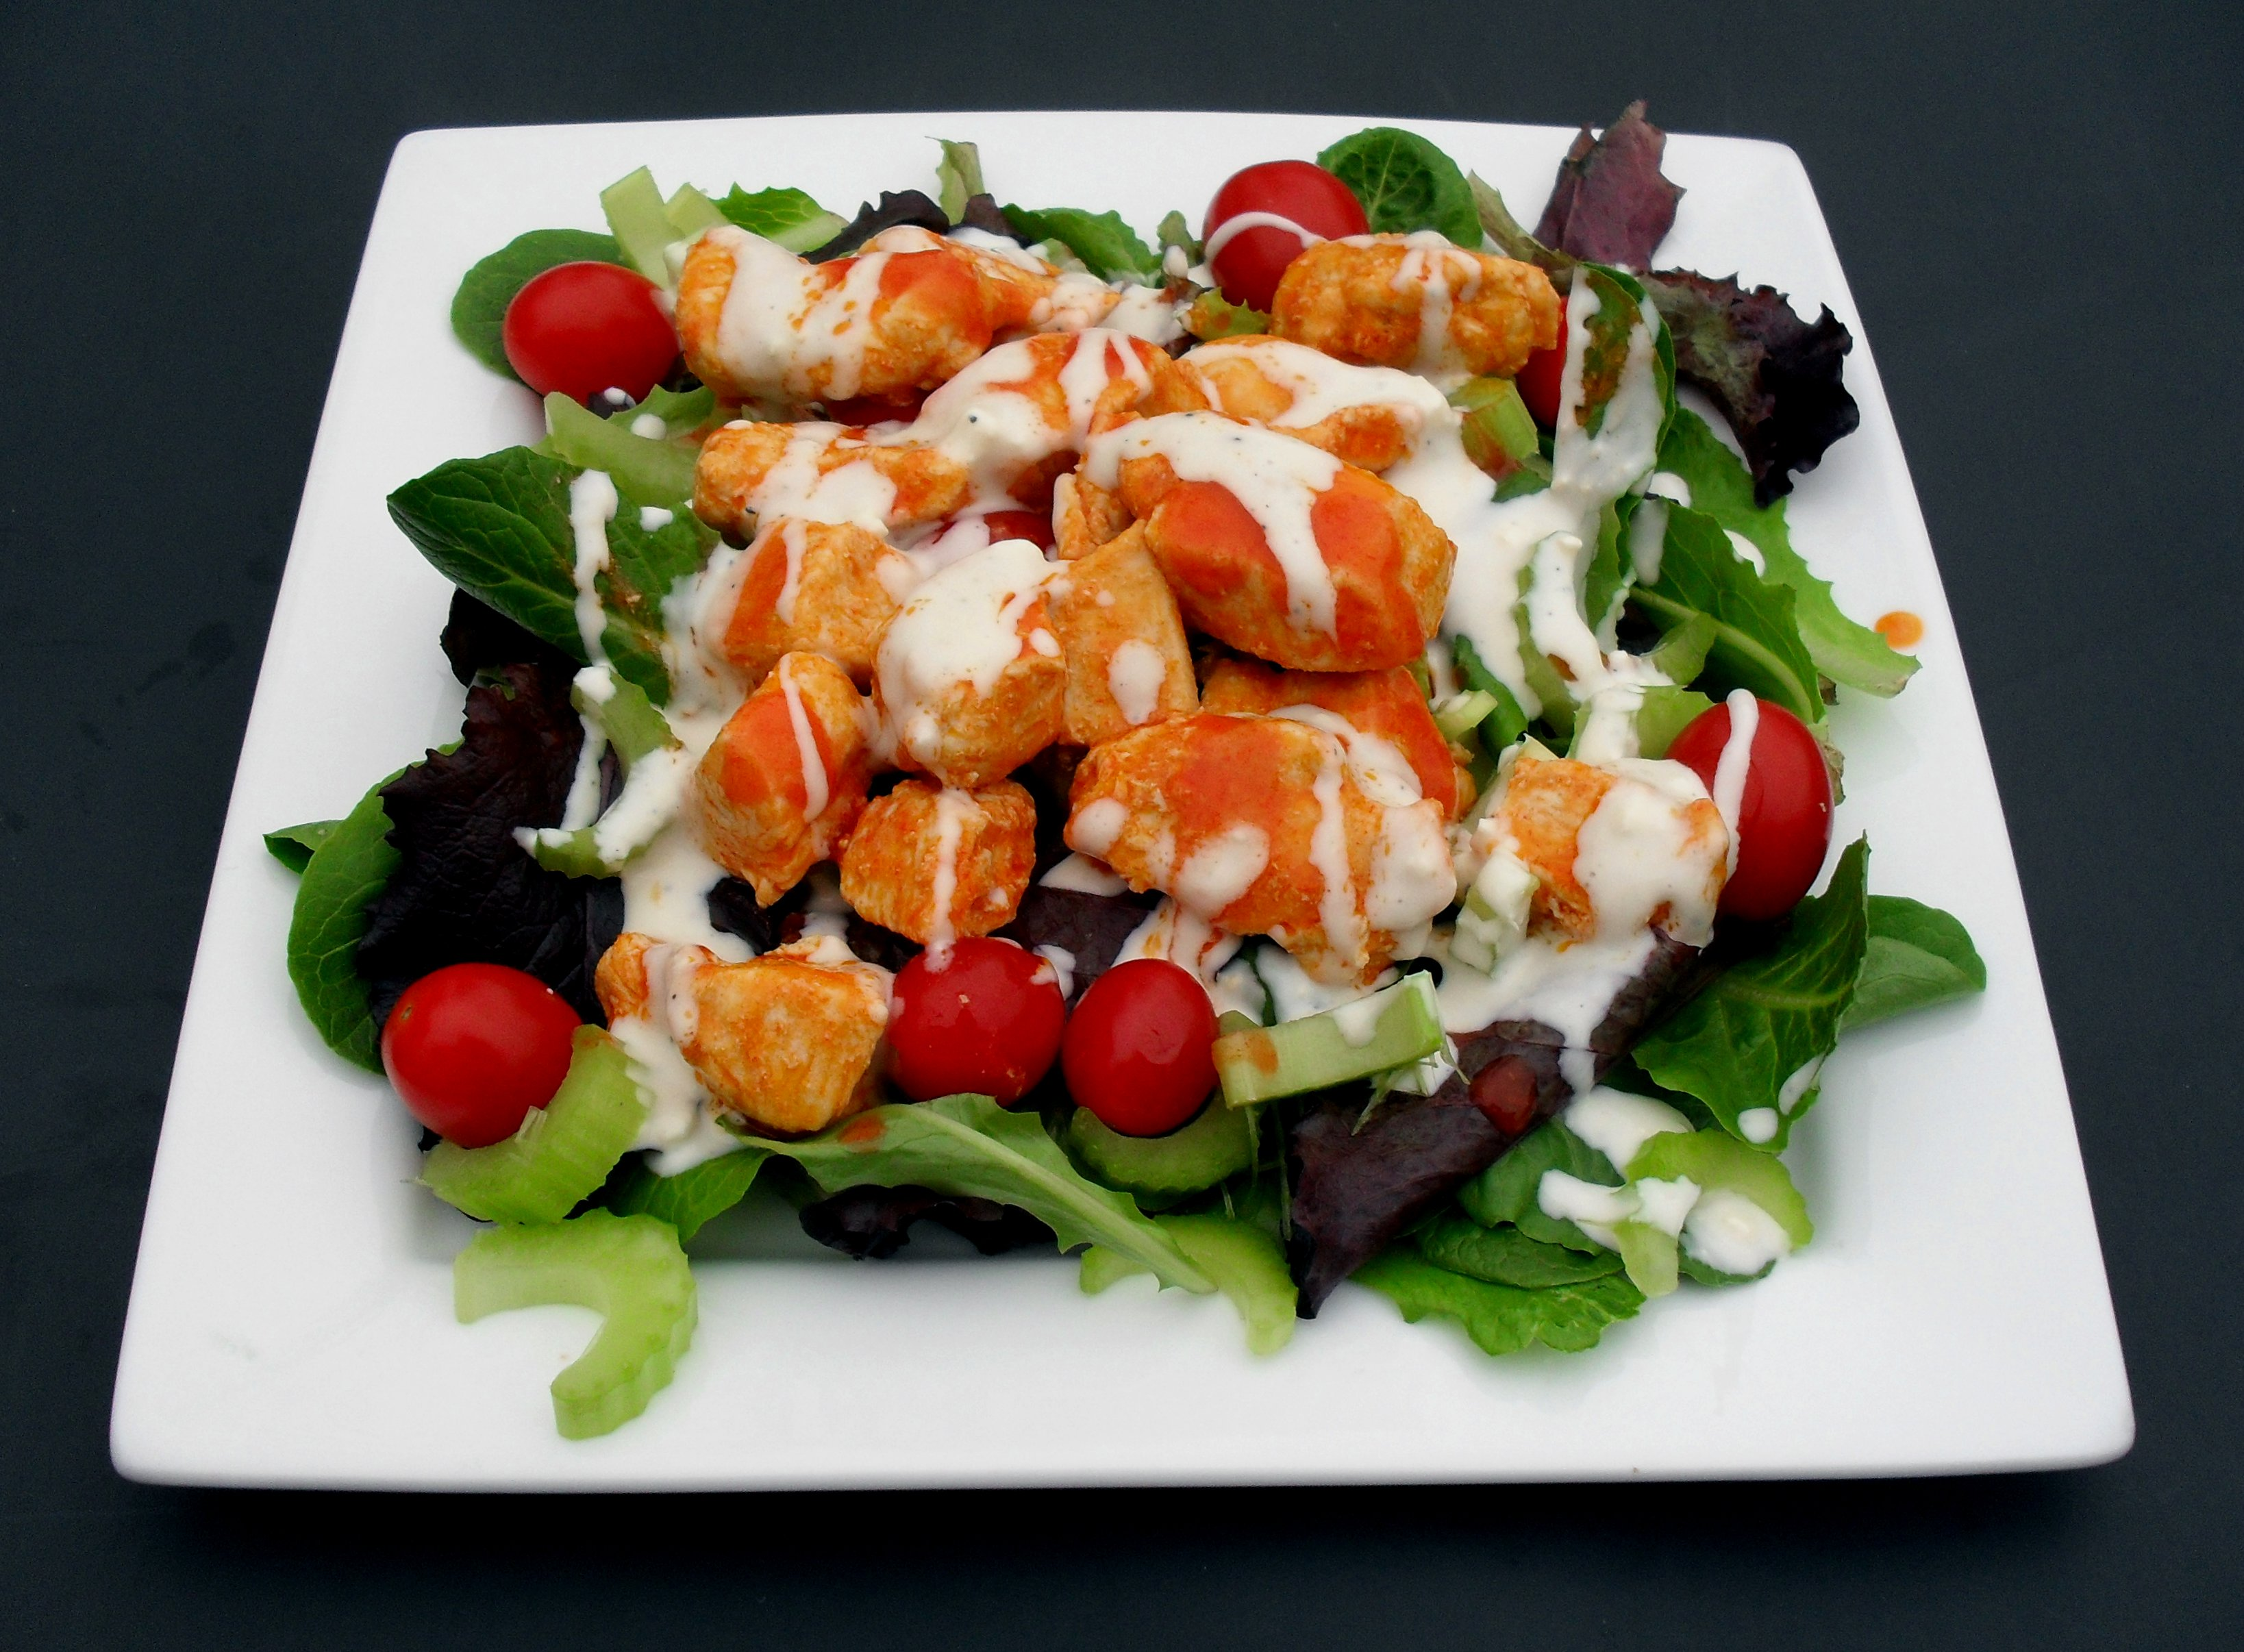 ... × 2412 in Buffalo Chicken Salad with Homemade Blue Cheese Dressing